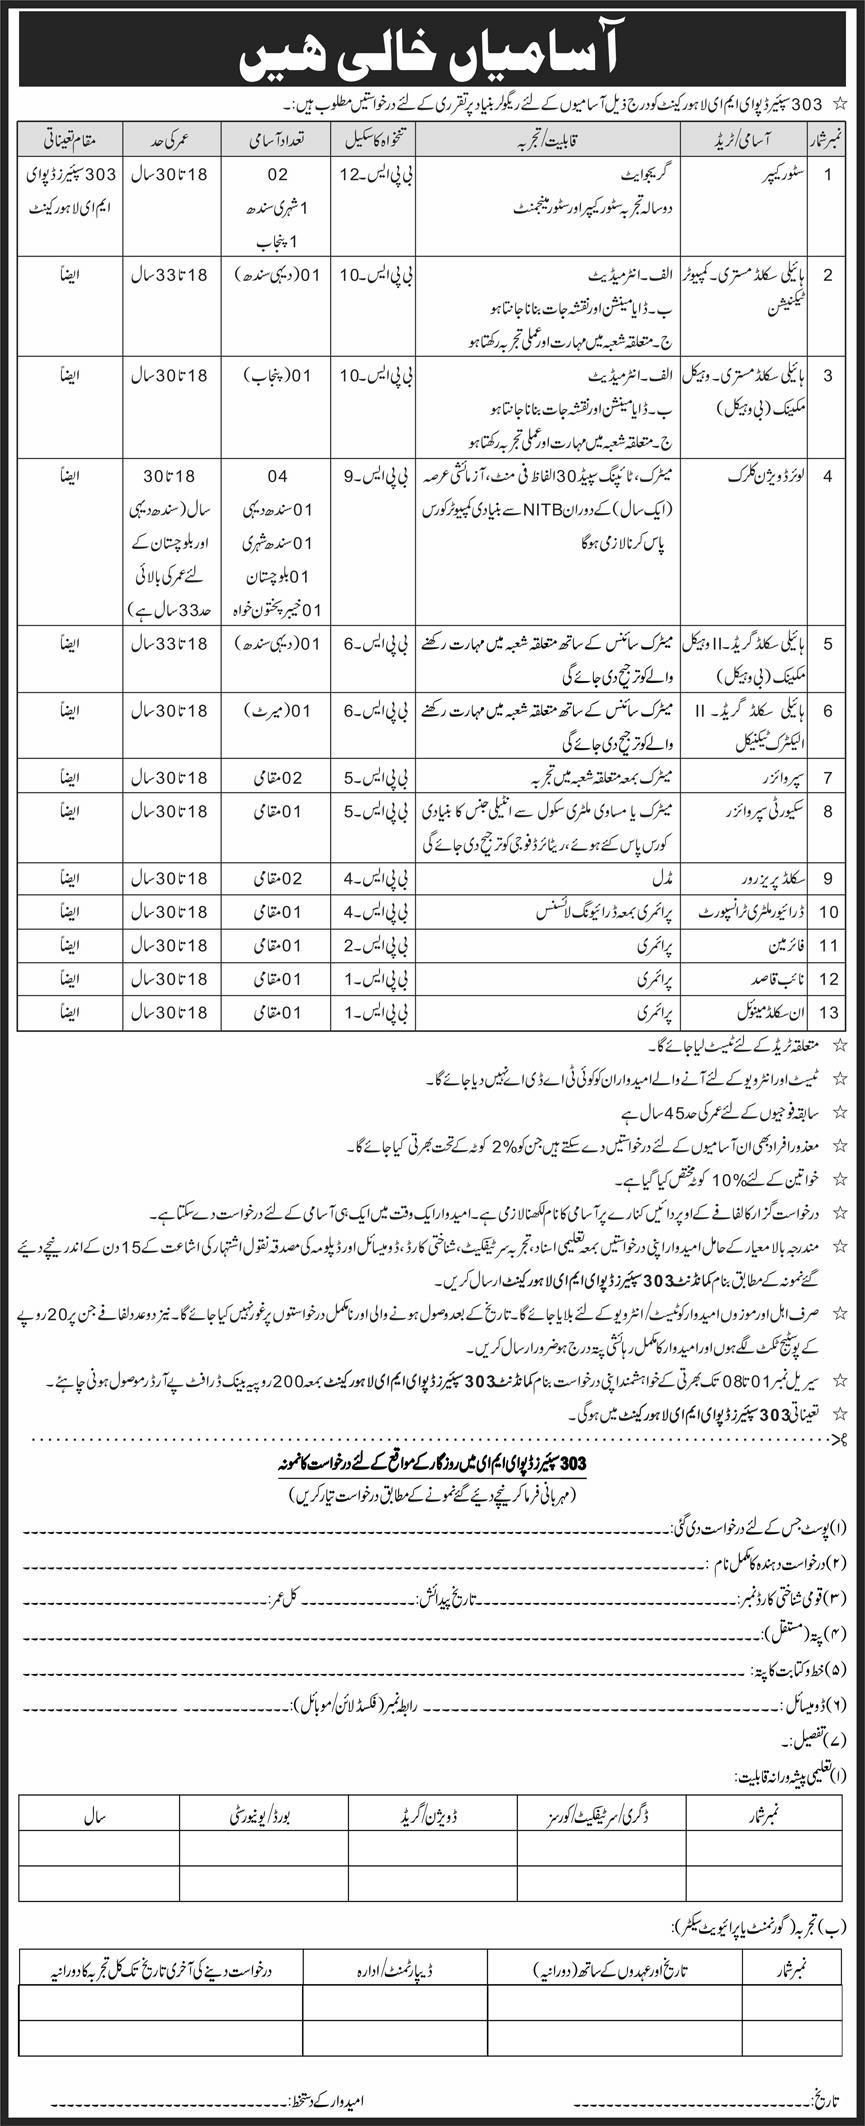 303 Spare Depot EME Lahore Cantt Jobs October 2020